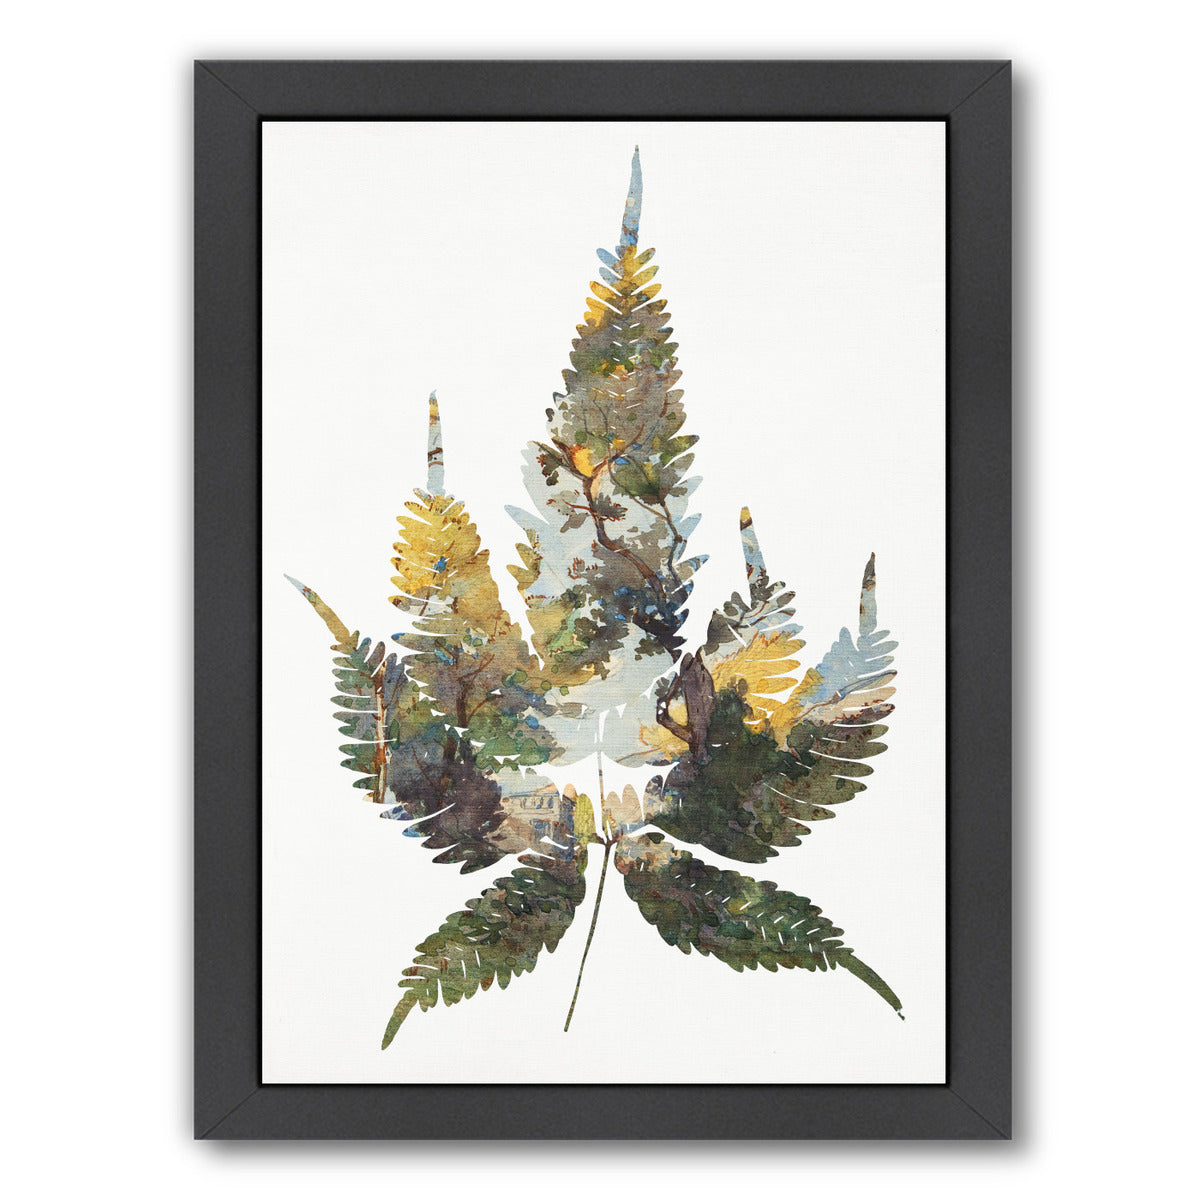 Leaf Collage I By Chaos & Wonder Design - Black Framed Print - Wall Art - Americanflat